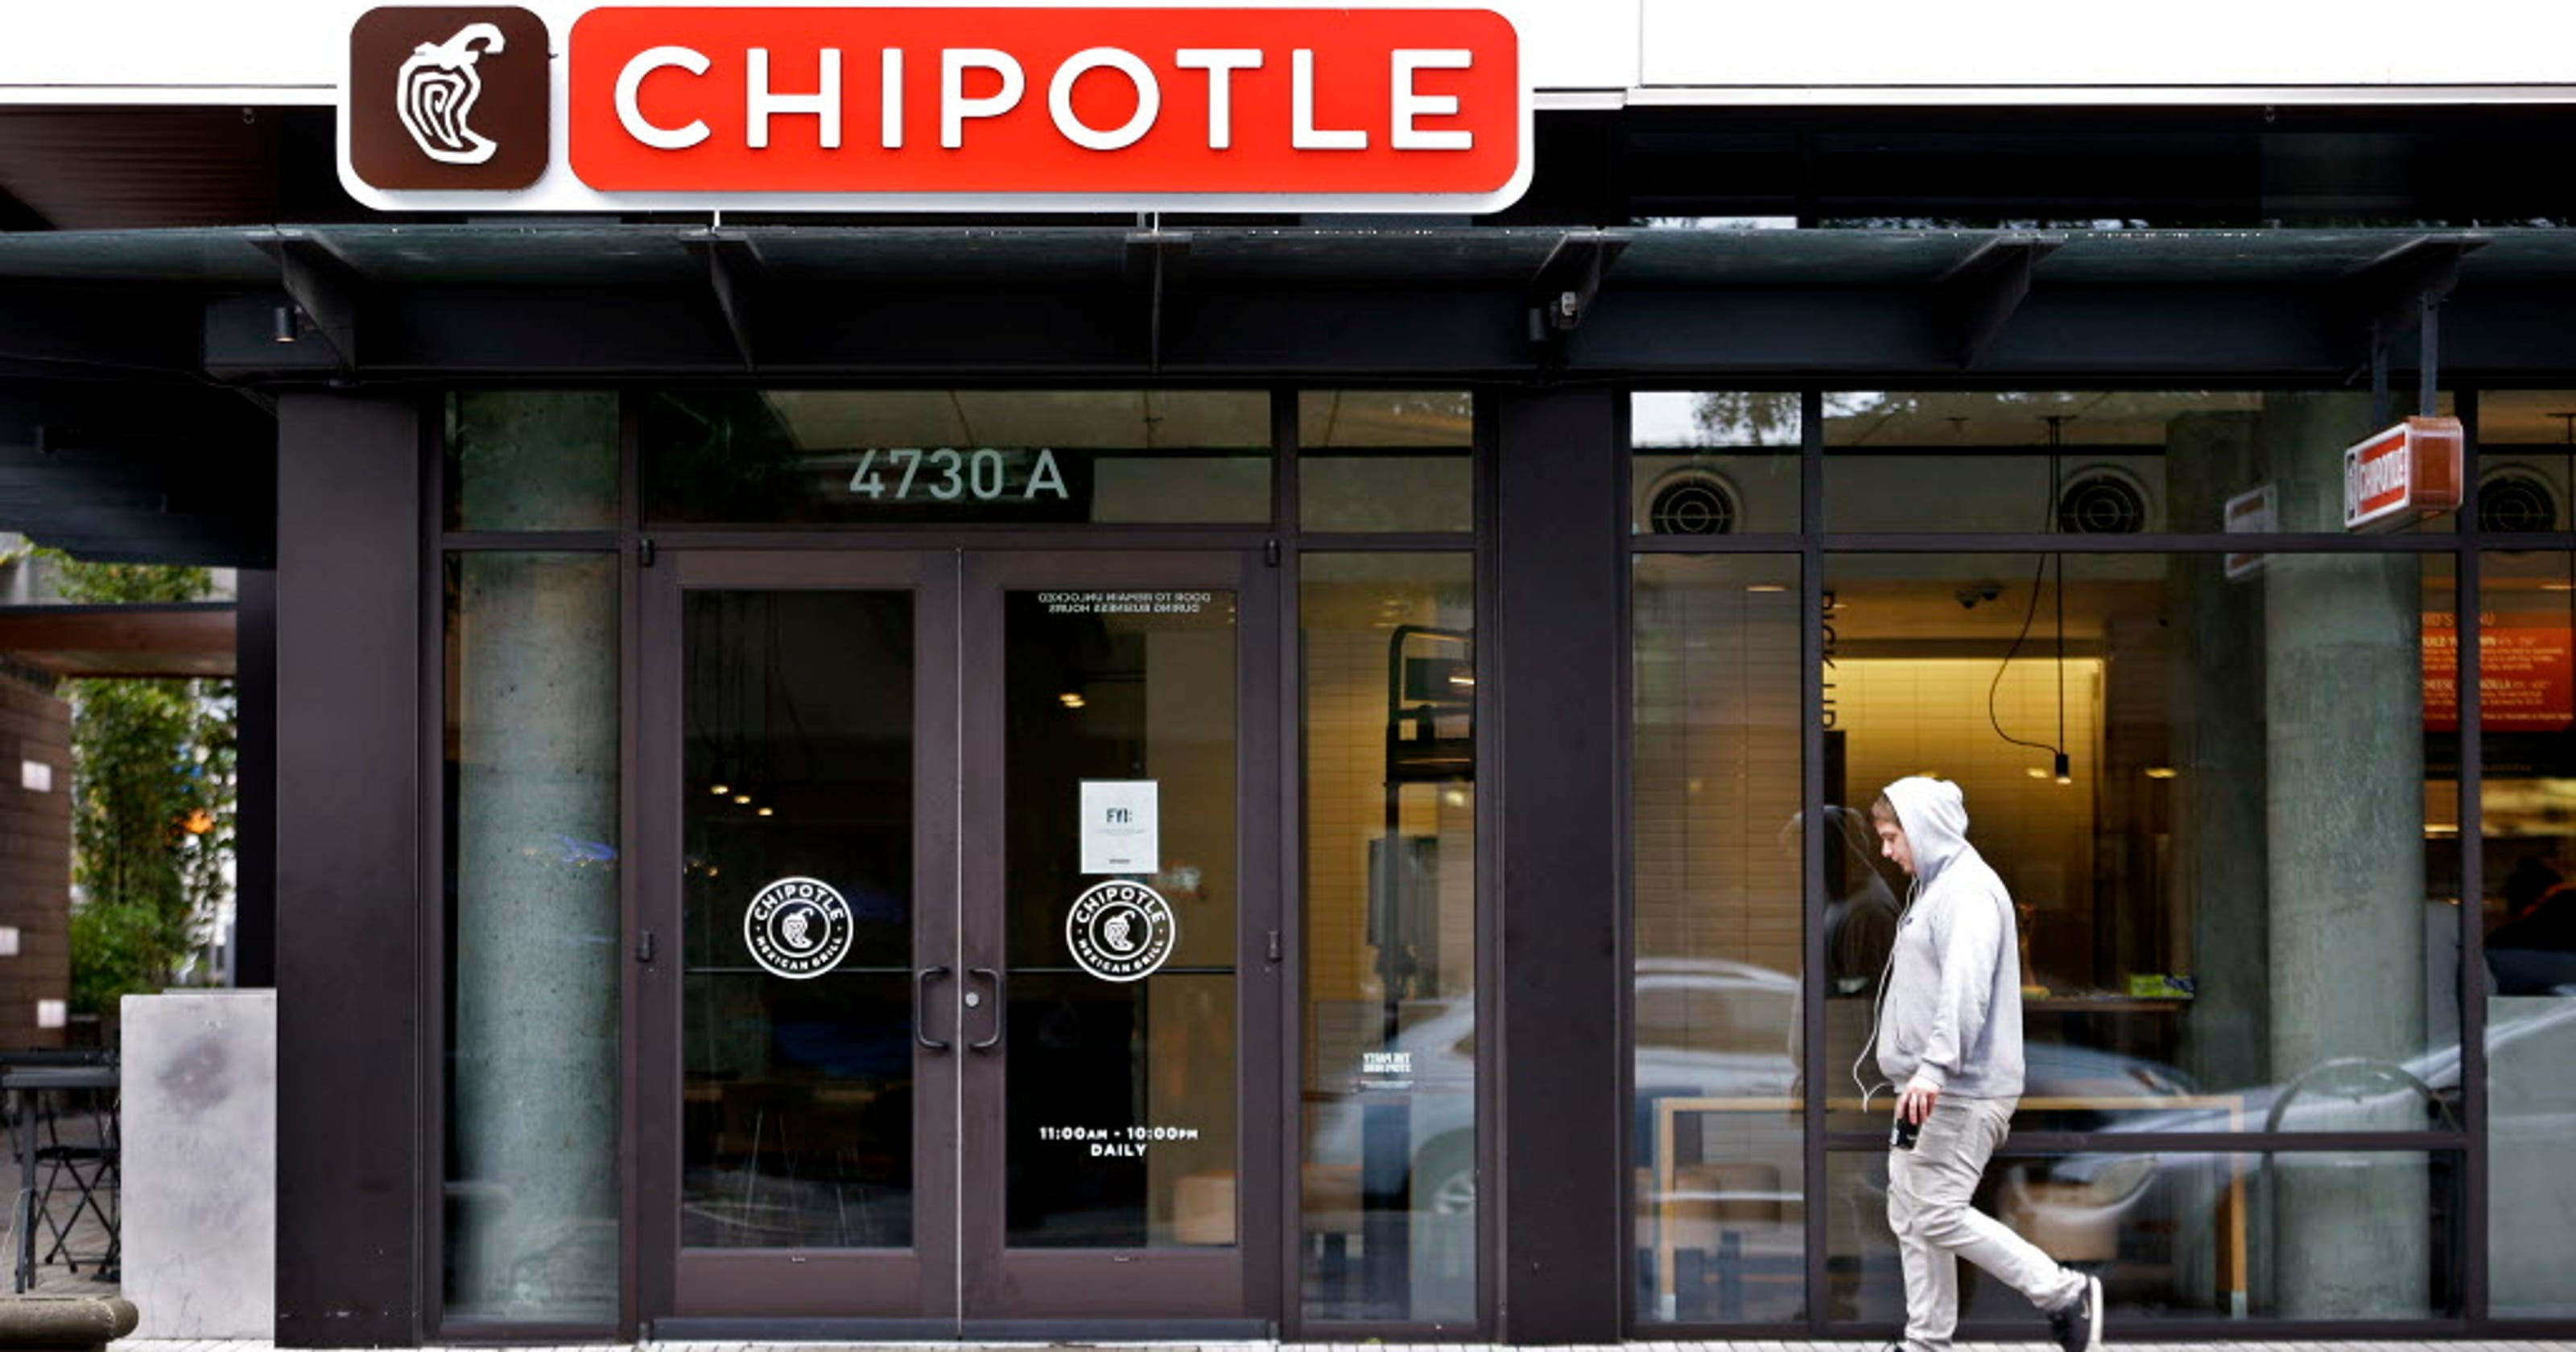 Chipotle To Close All Stores On Feb 8 For All Staff Meeting On Food